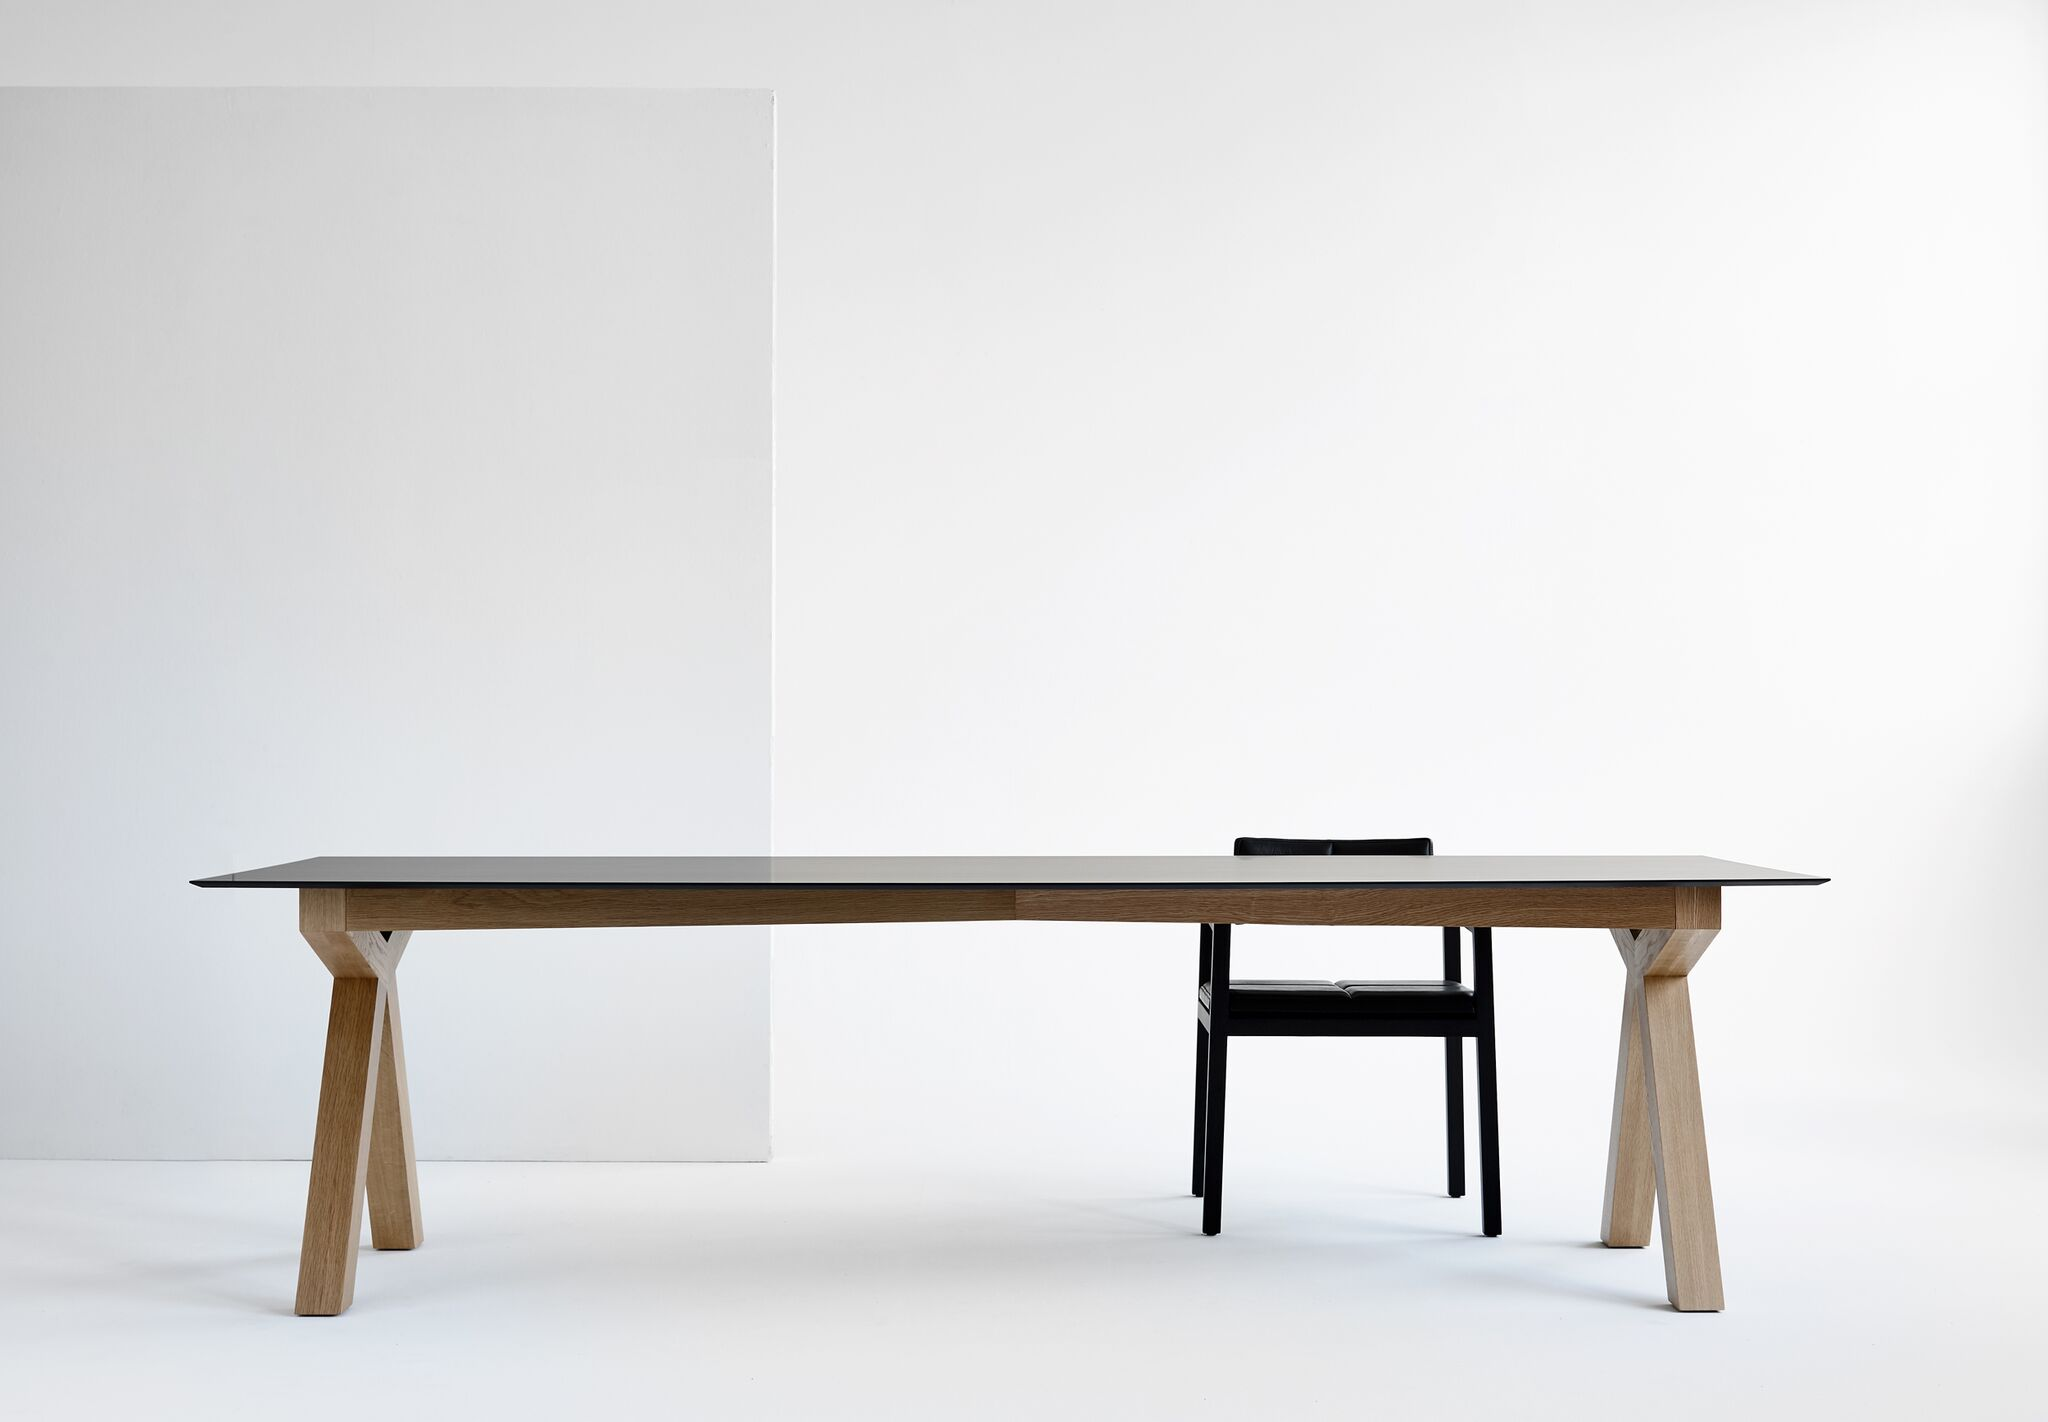 Gallery Of Unity Table By Franco Crea Local Australian Furniture Designer & Maker Richmond, Melbourne Image 1